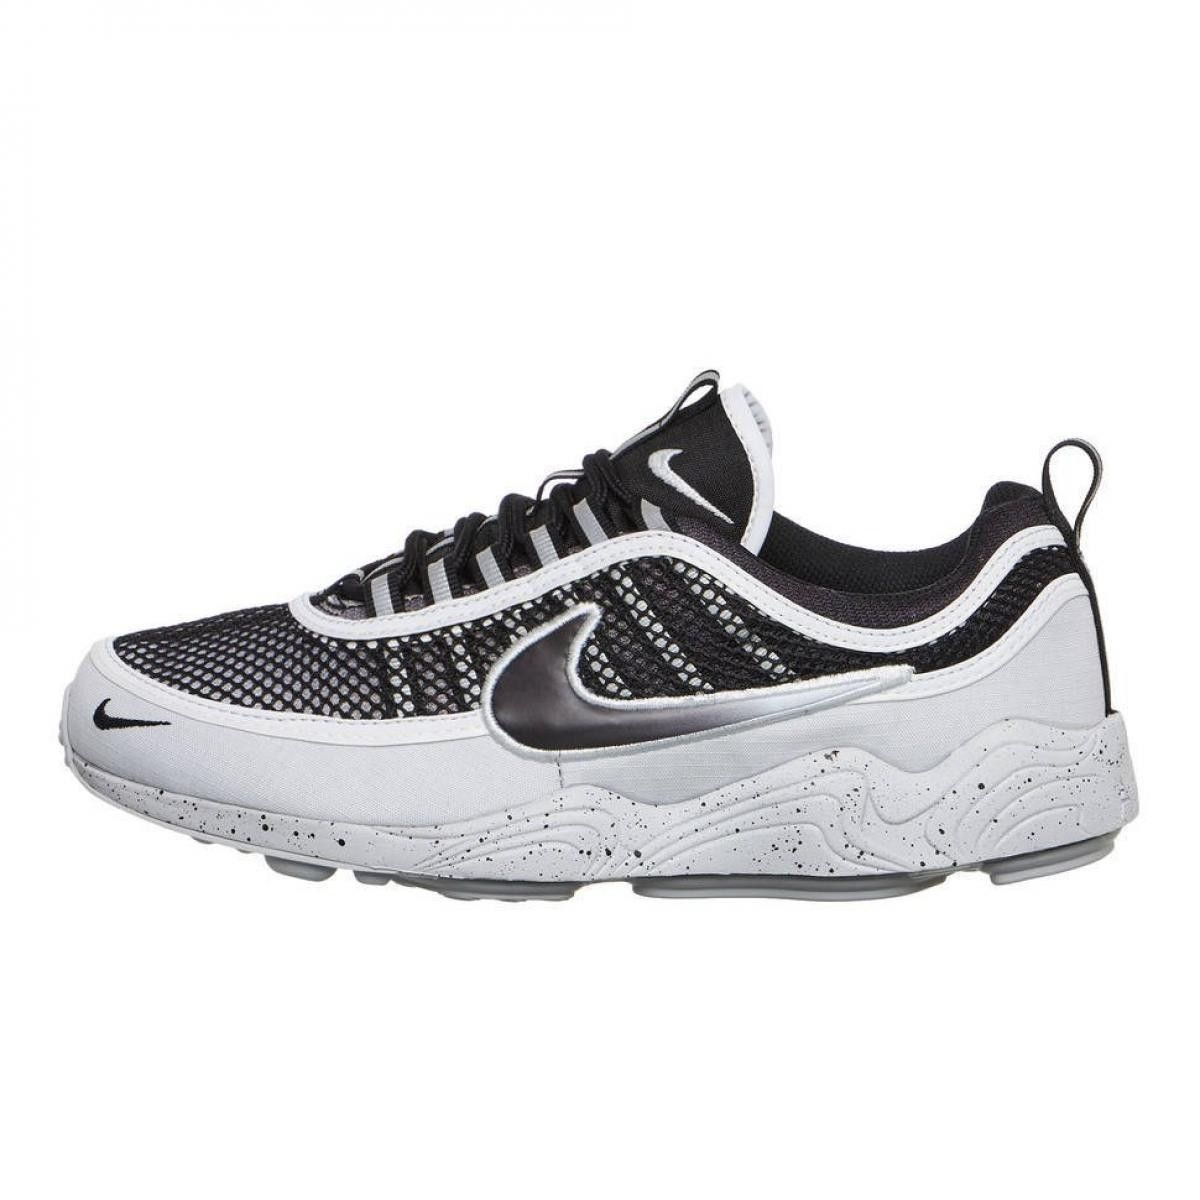 sports shoes 7feea 0f385 Basket Nike Air Zoom Spiridon 16 - 926955-004 - Taille   40 41